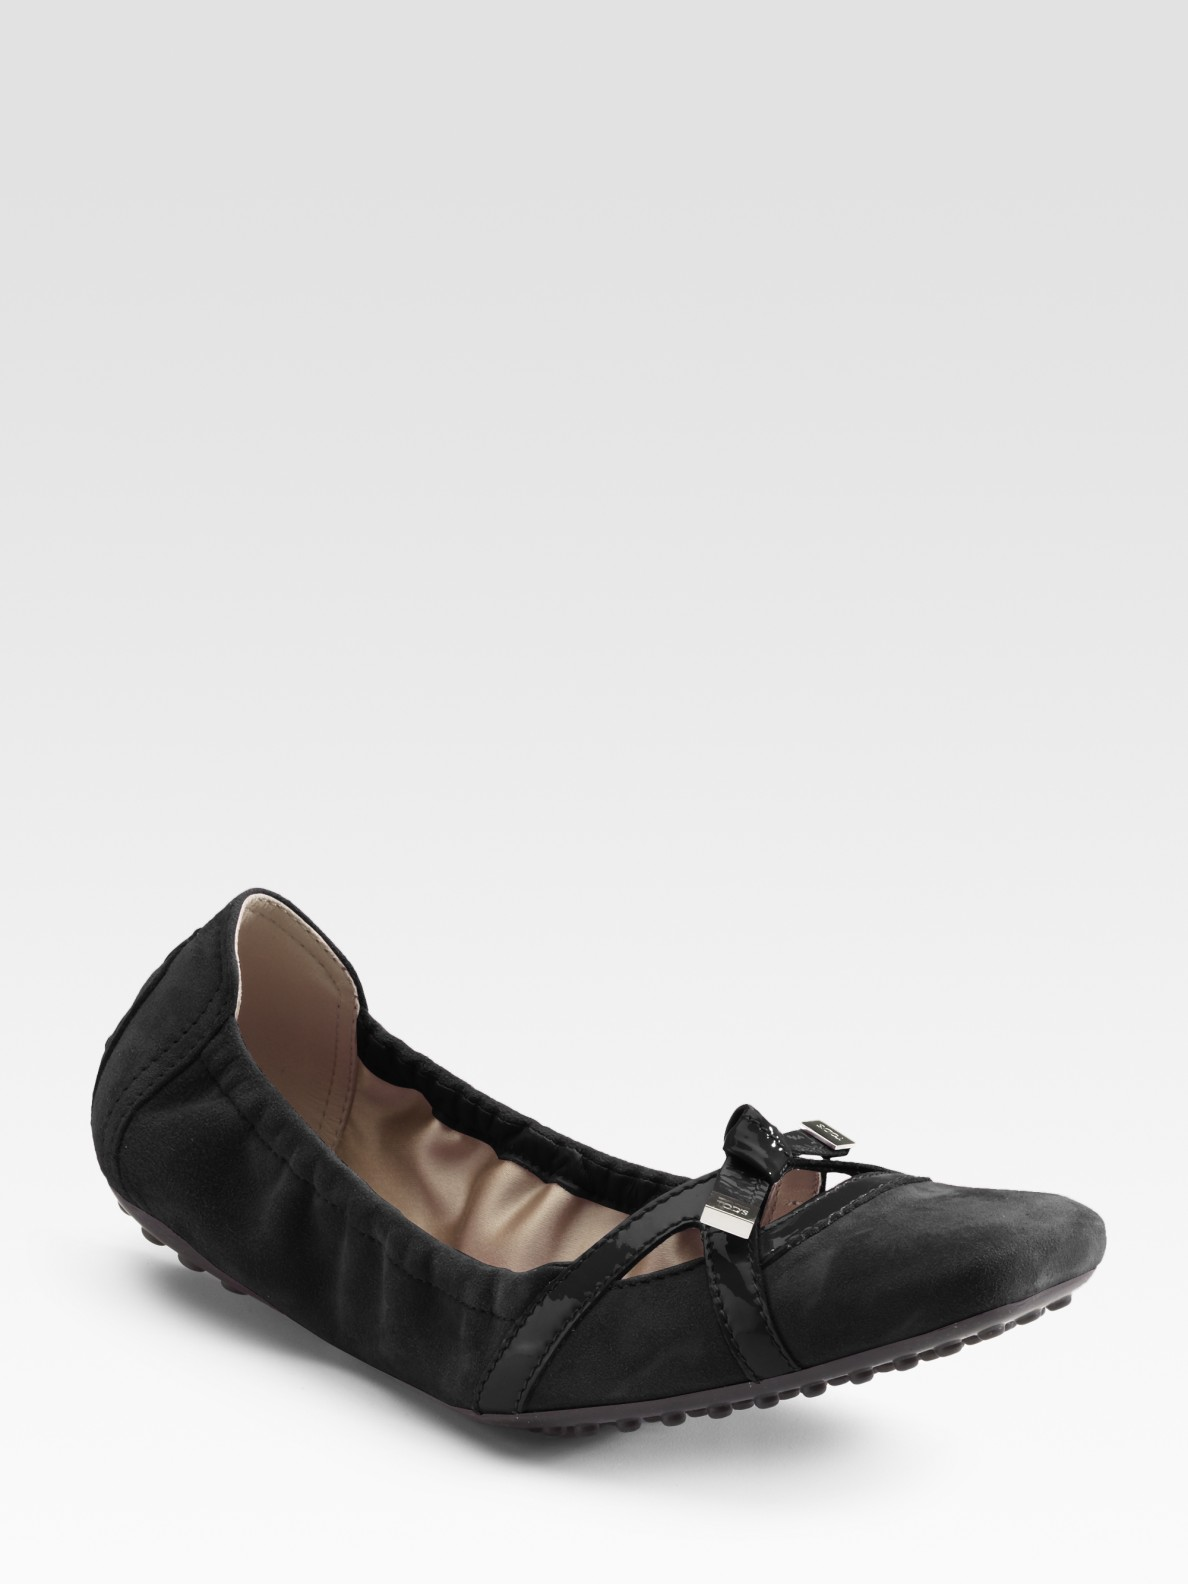 6564104110 Tod's Degas Suede Ballet Flats in Black - Lyst